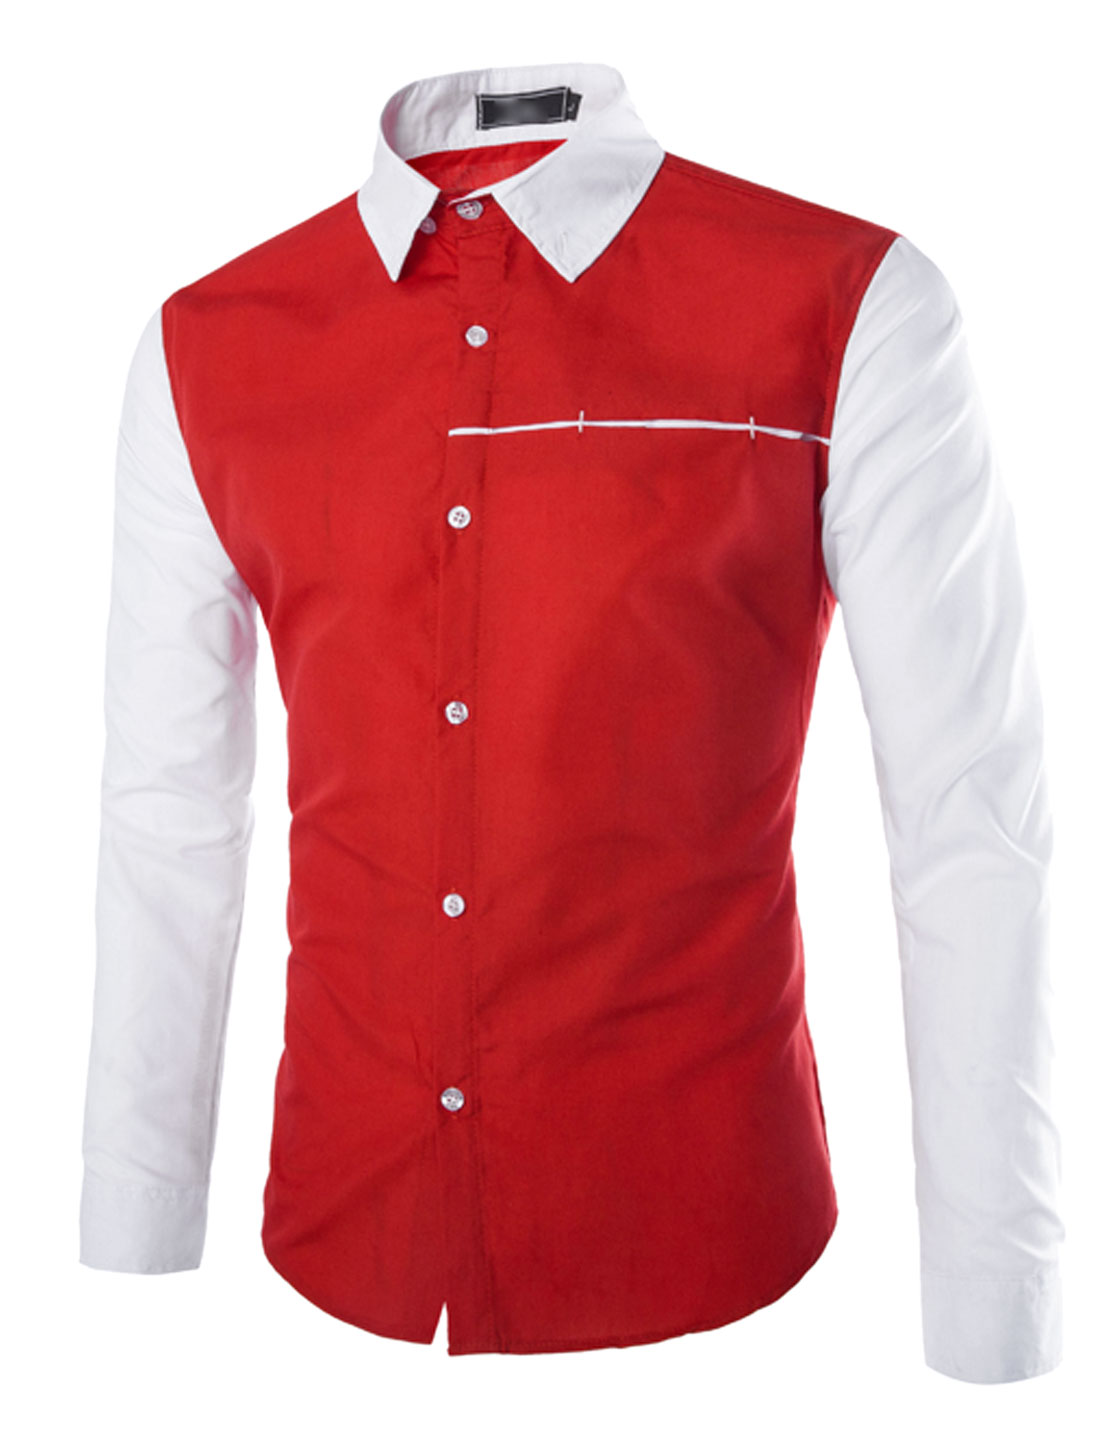 Men Long Sleeve Point Collar Button Closure Slim Fit Shirts Red S